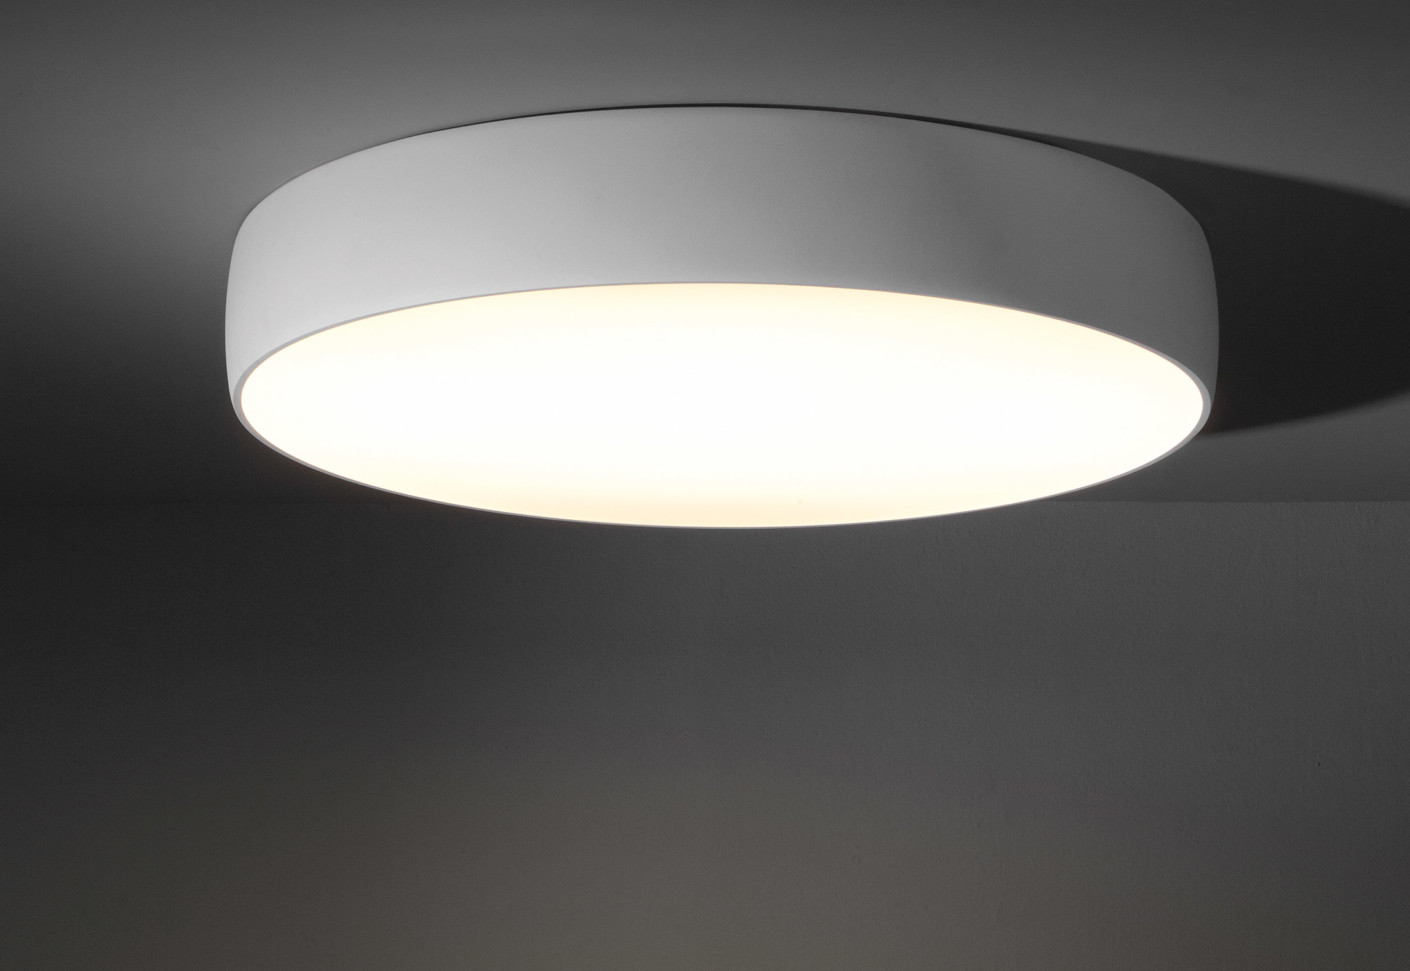 Flat moon ceiling lamp by modular lighting instruments stylepark aloadofball Gallery